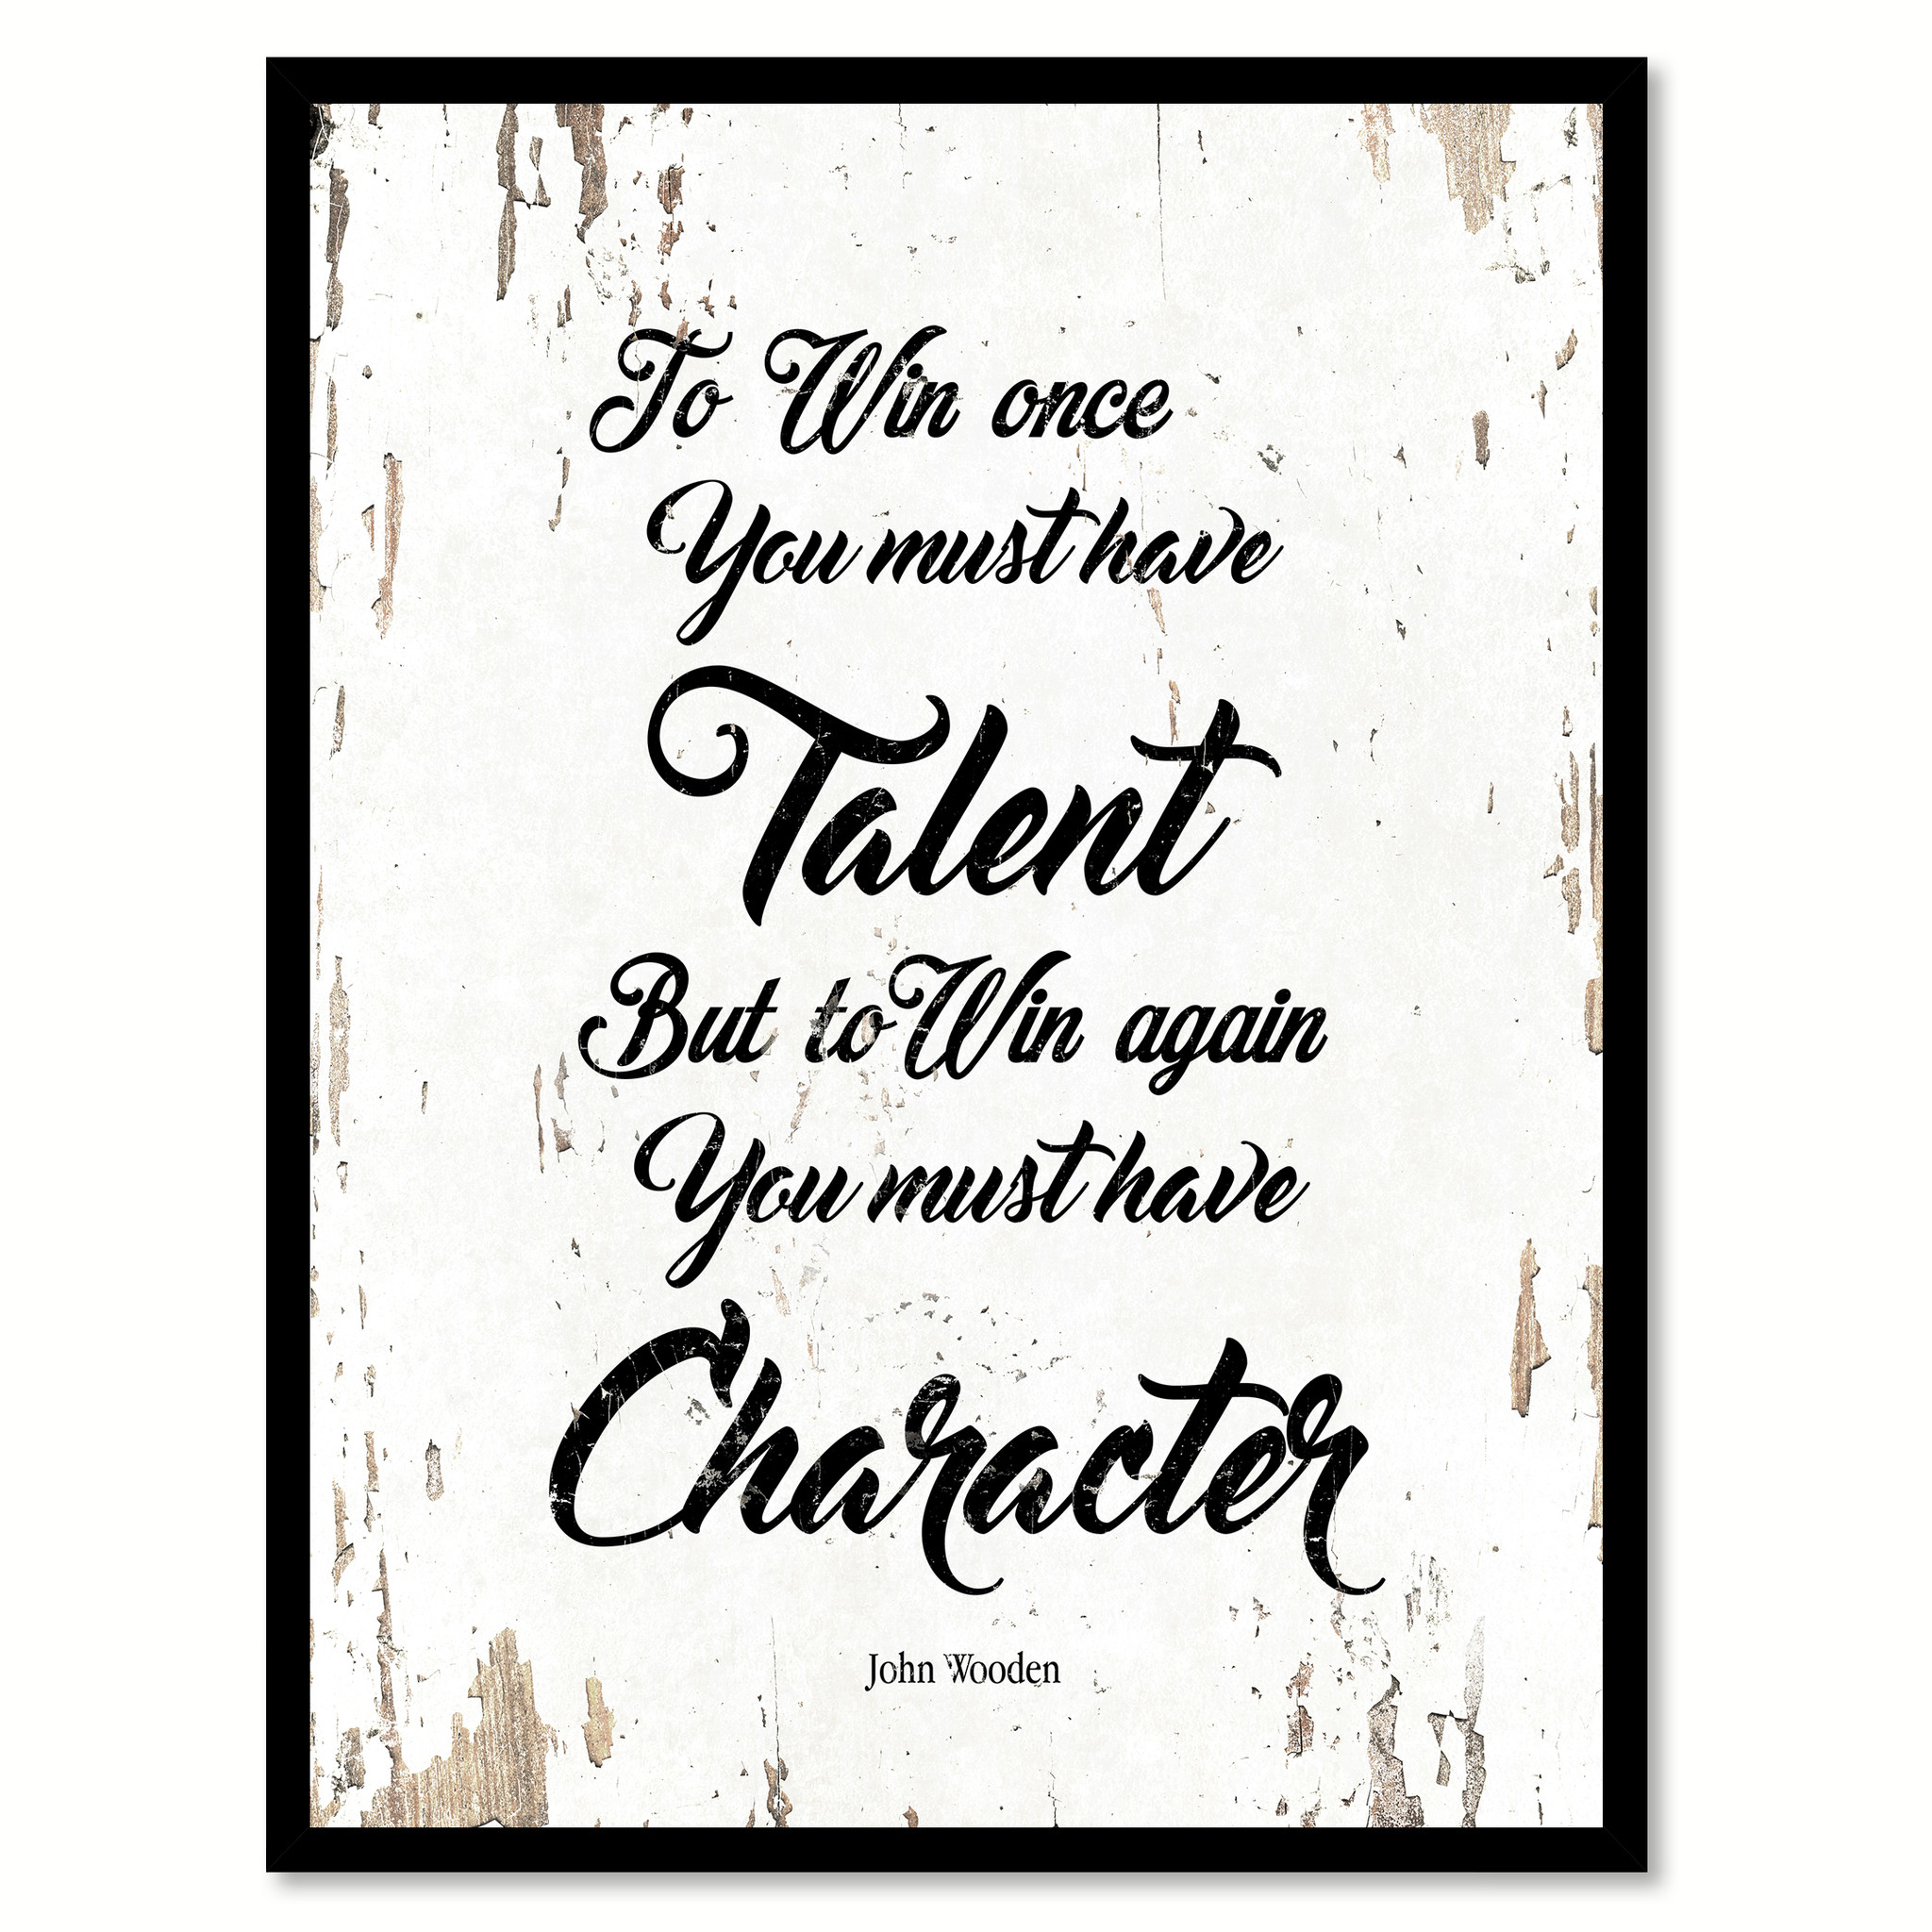 "To Win Once You Must Have Talent But To Win Again You Must Have Character John Wooden Print with Picture Frame Home Decor Wall Art Gifts - 7""x9\"""